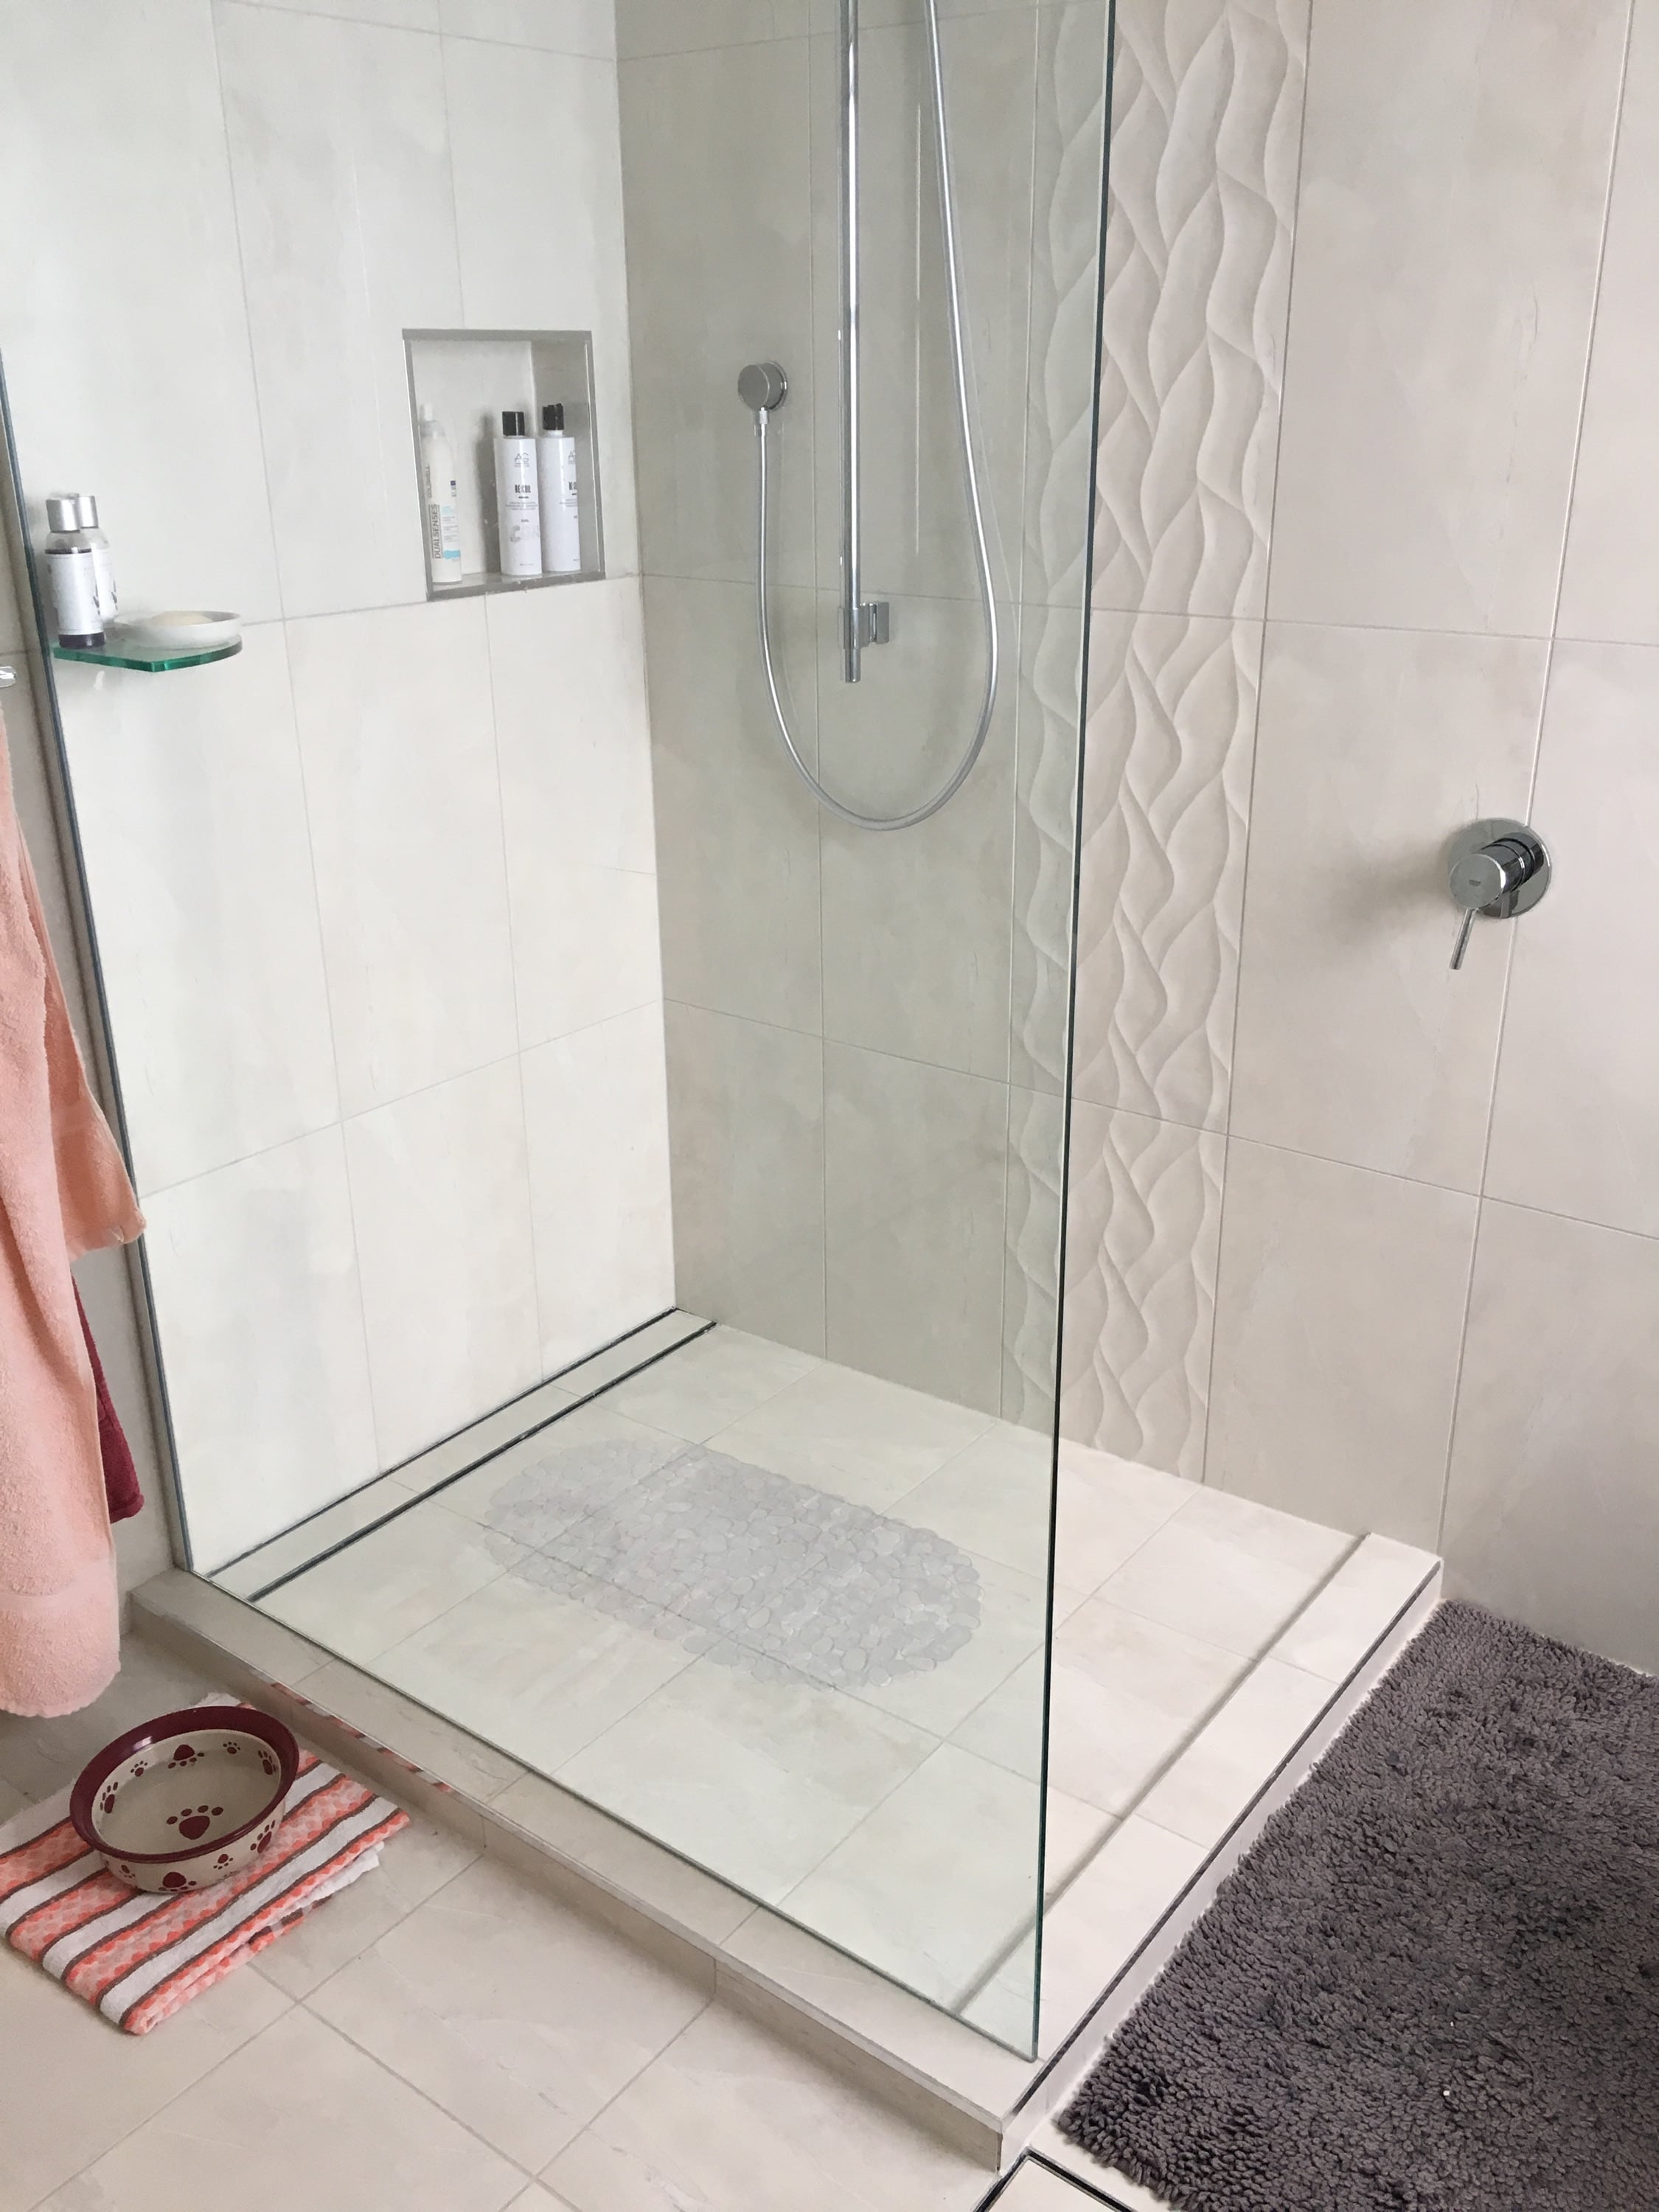 in tile bathroom unique h best awesome shower tiling laying vinyl of ideas beautiful flooring plank